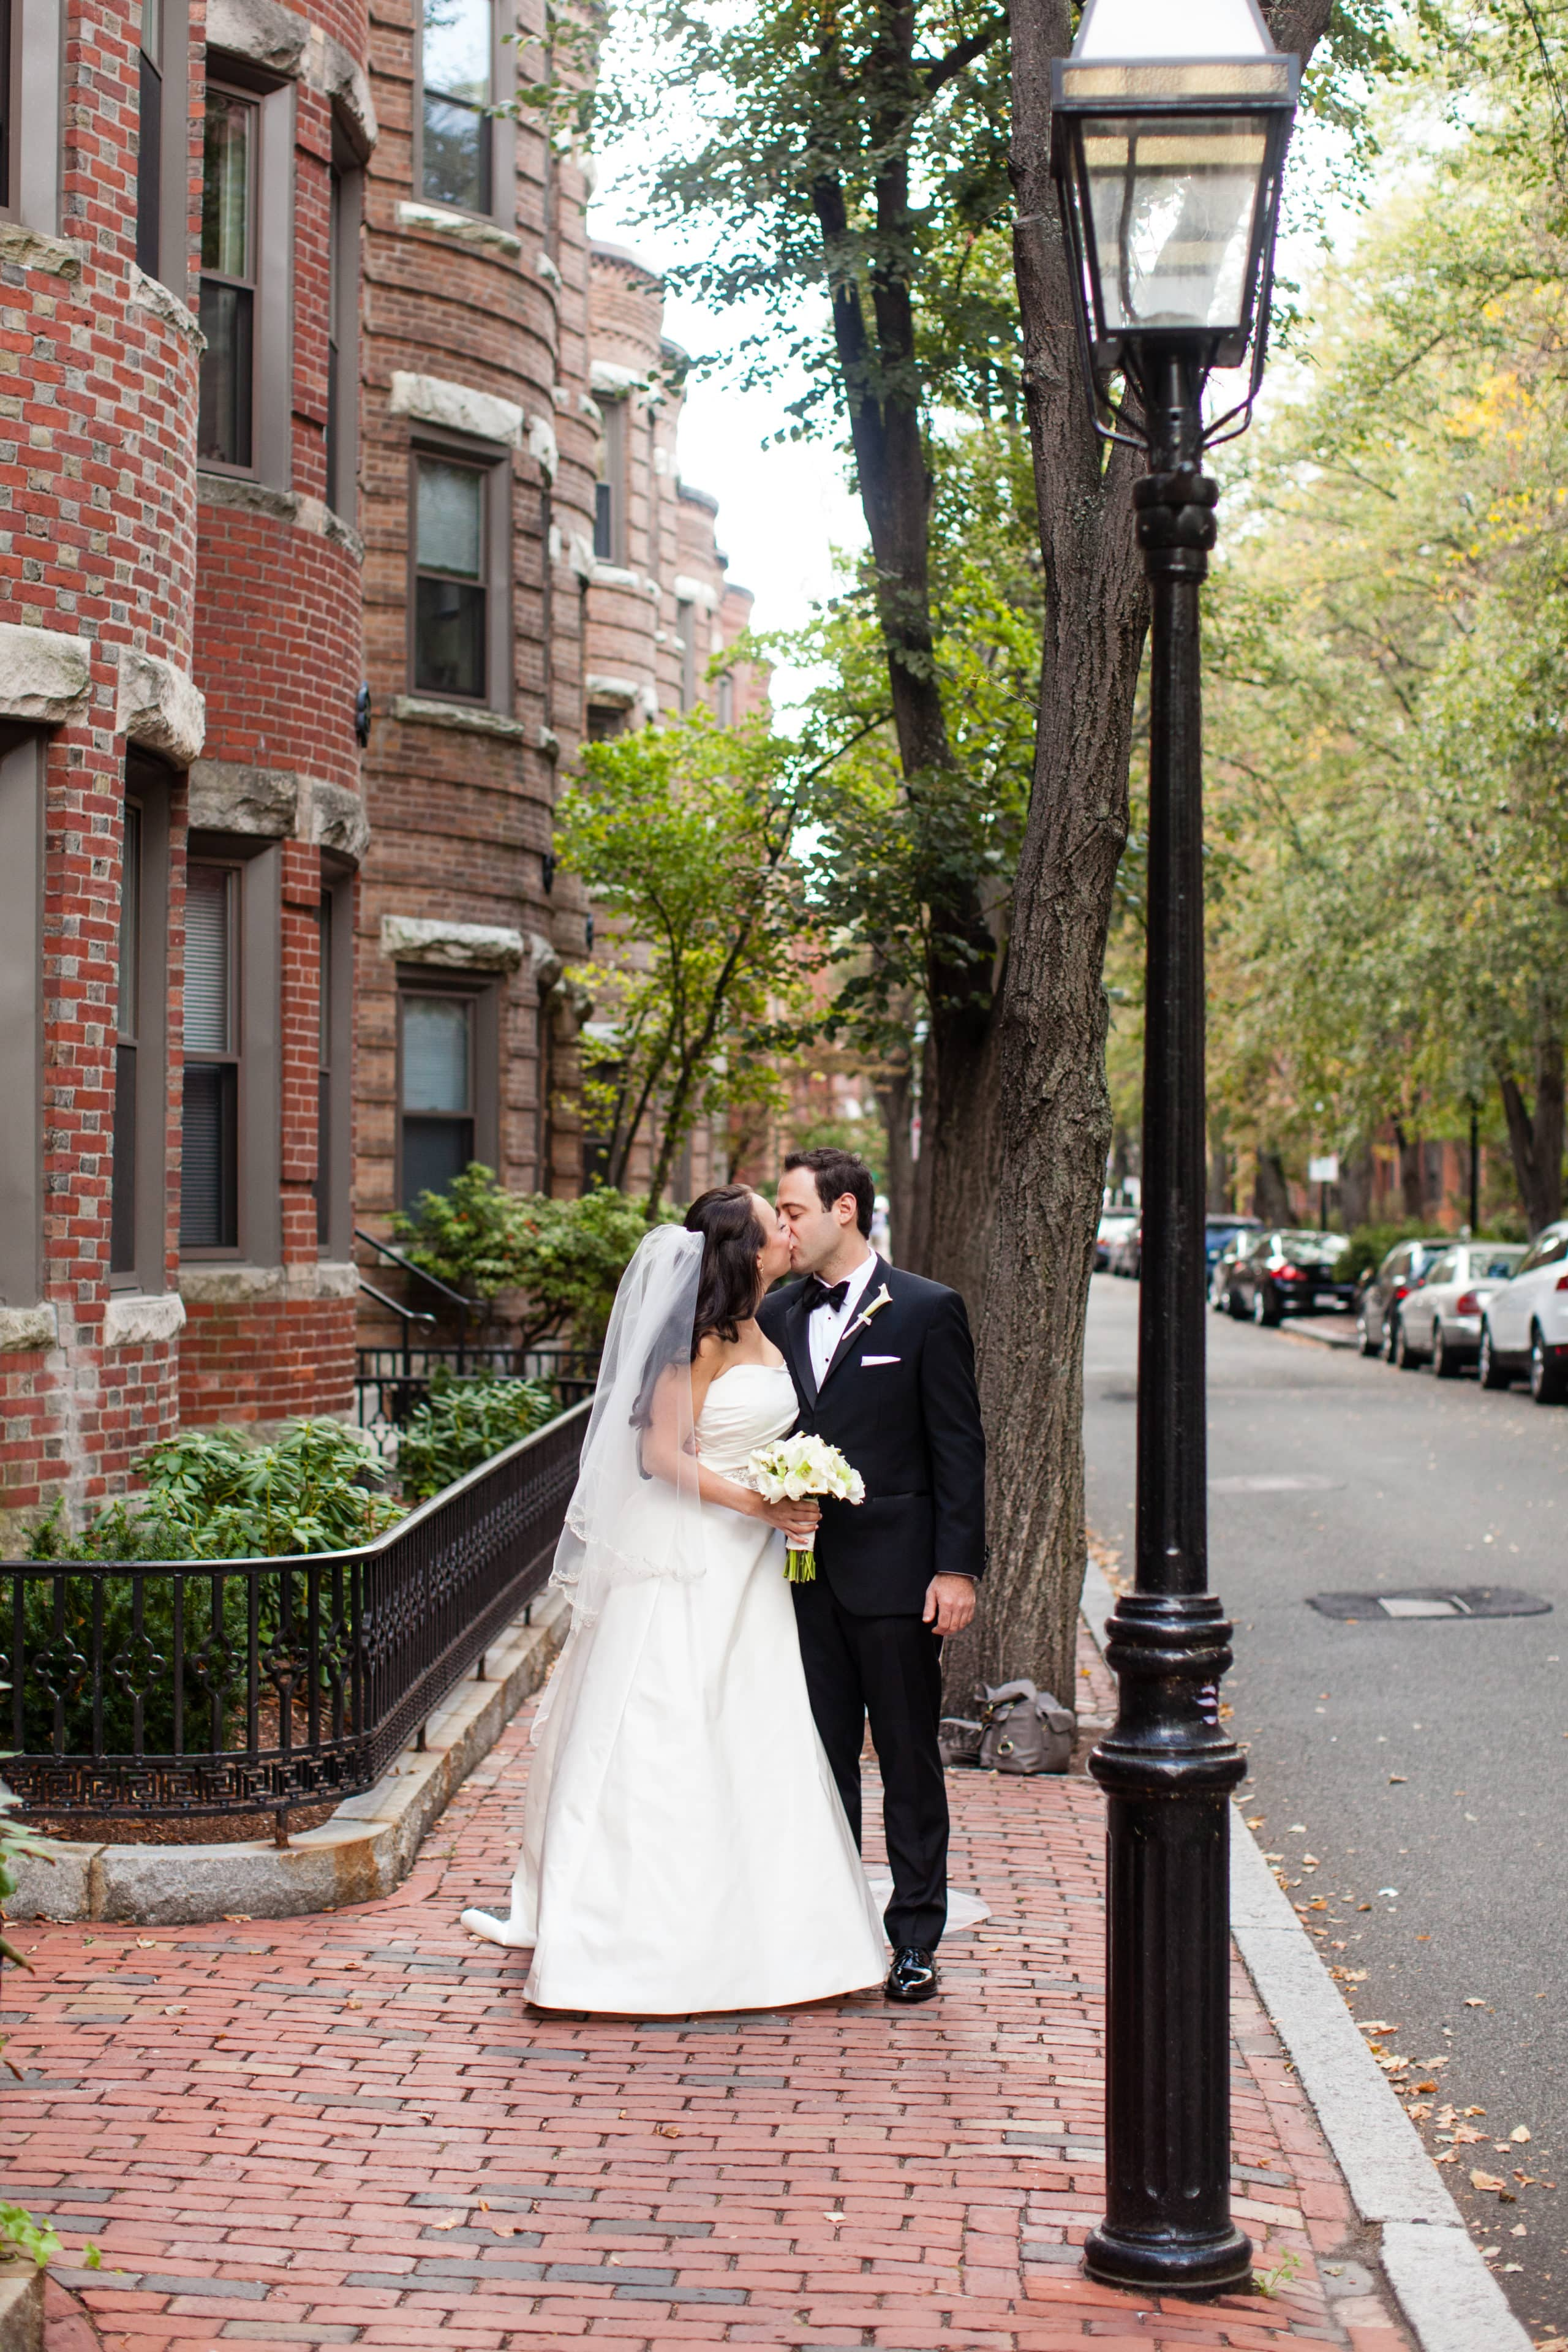 Just Married, this happy couple shares an intimate kiss on the sidewalk under a lamppost